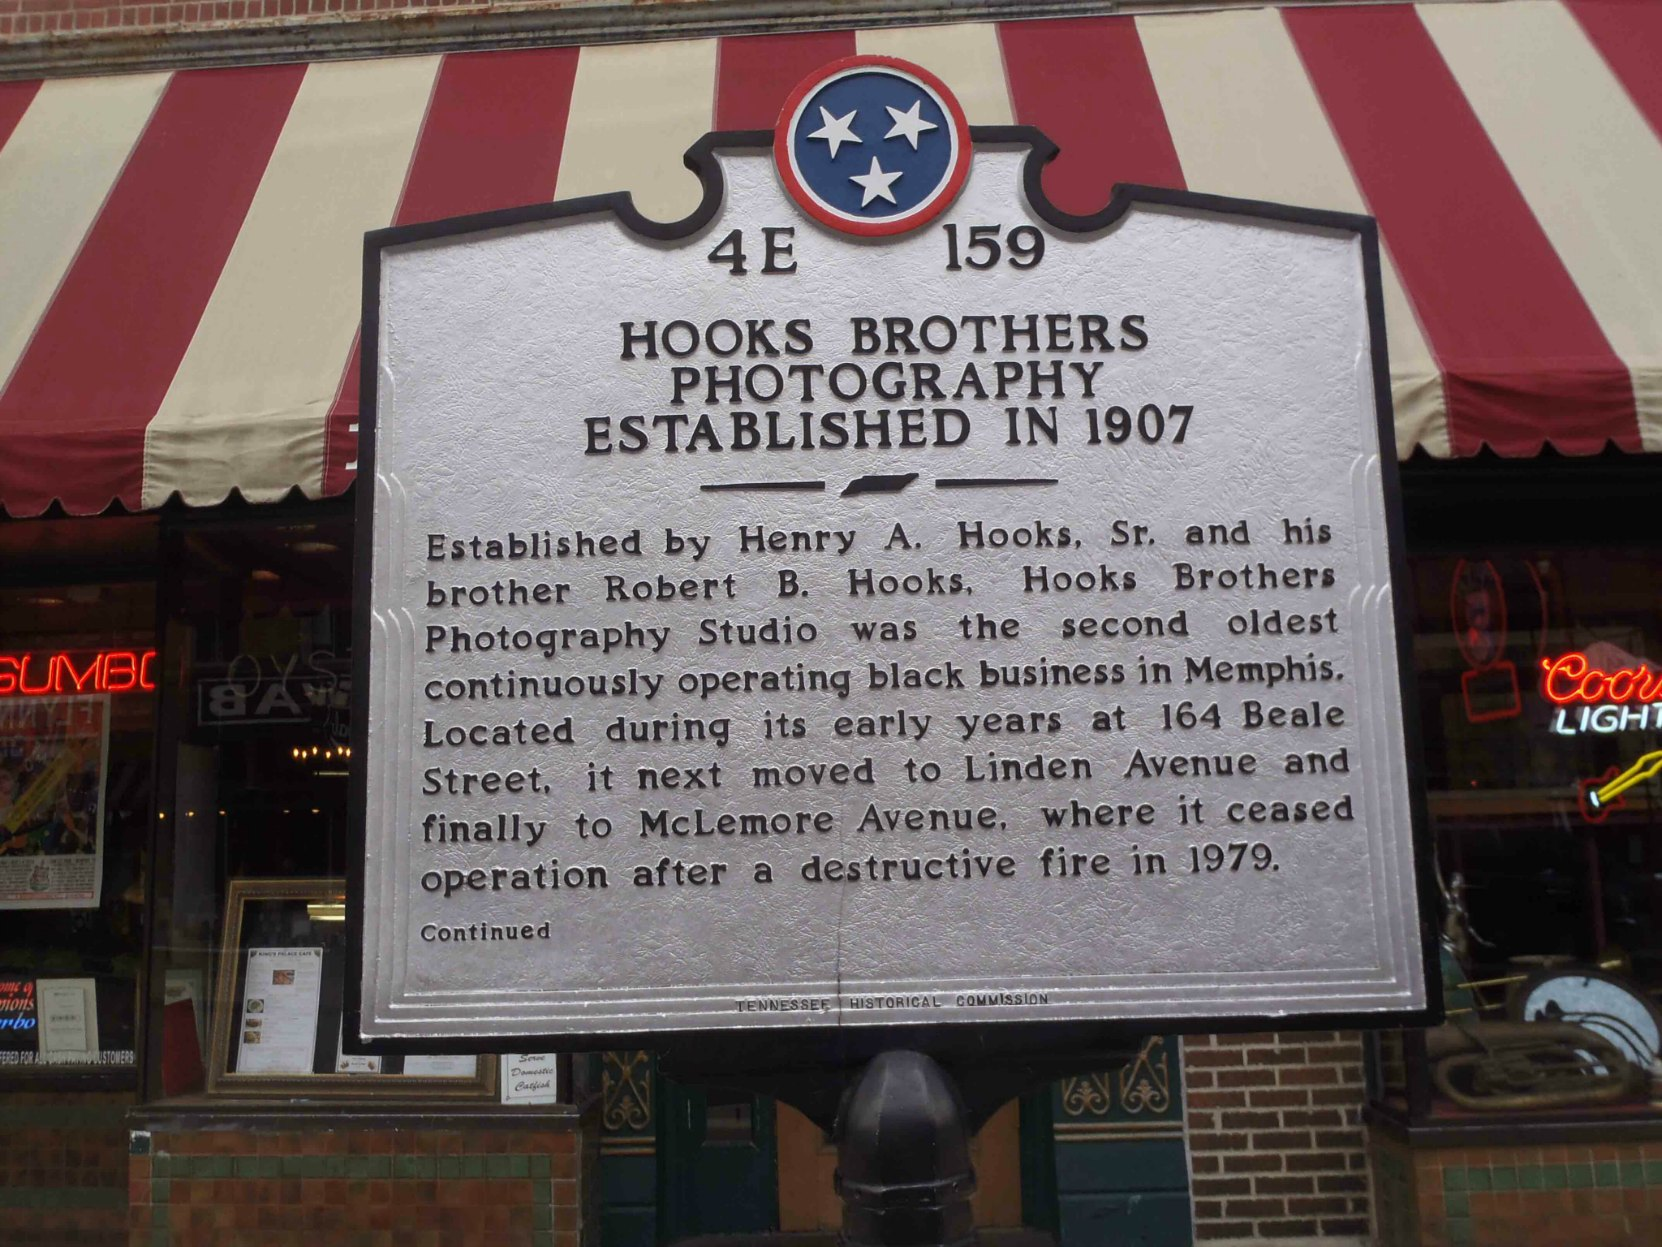 Tennessee Historical Commission marker (front) for Hooks Brothers Photography, outside 164 Beale Street, Memphis